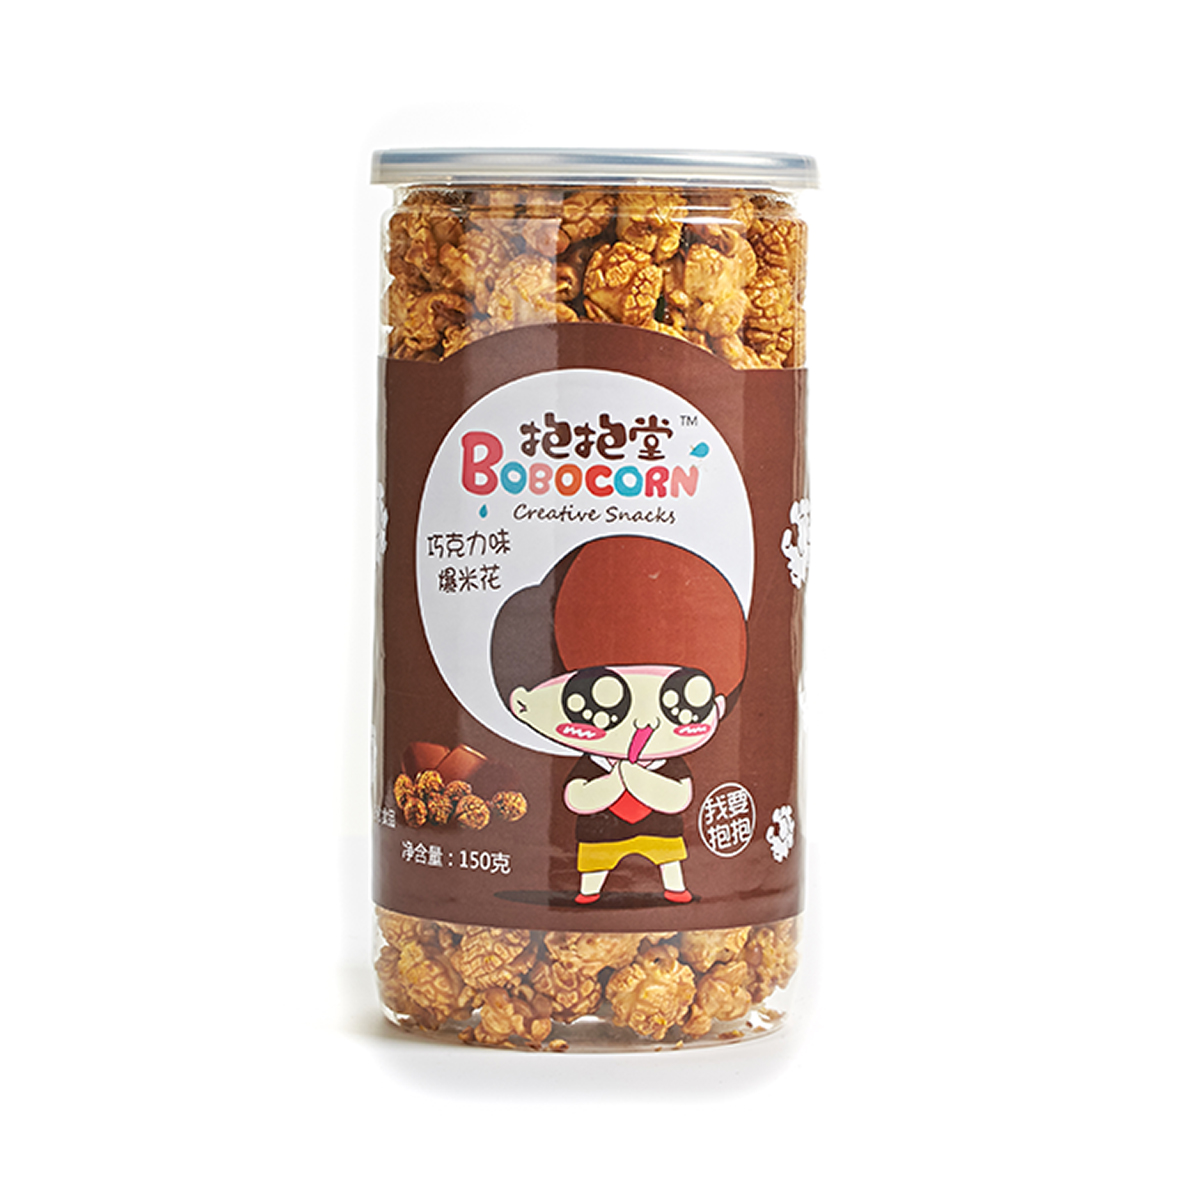 Hug hall spherical chocolate flavored popcorn snack essential office three cans shipping 150g * 1 cans